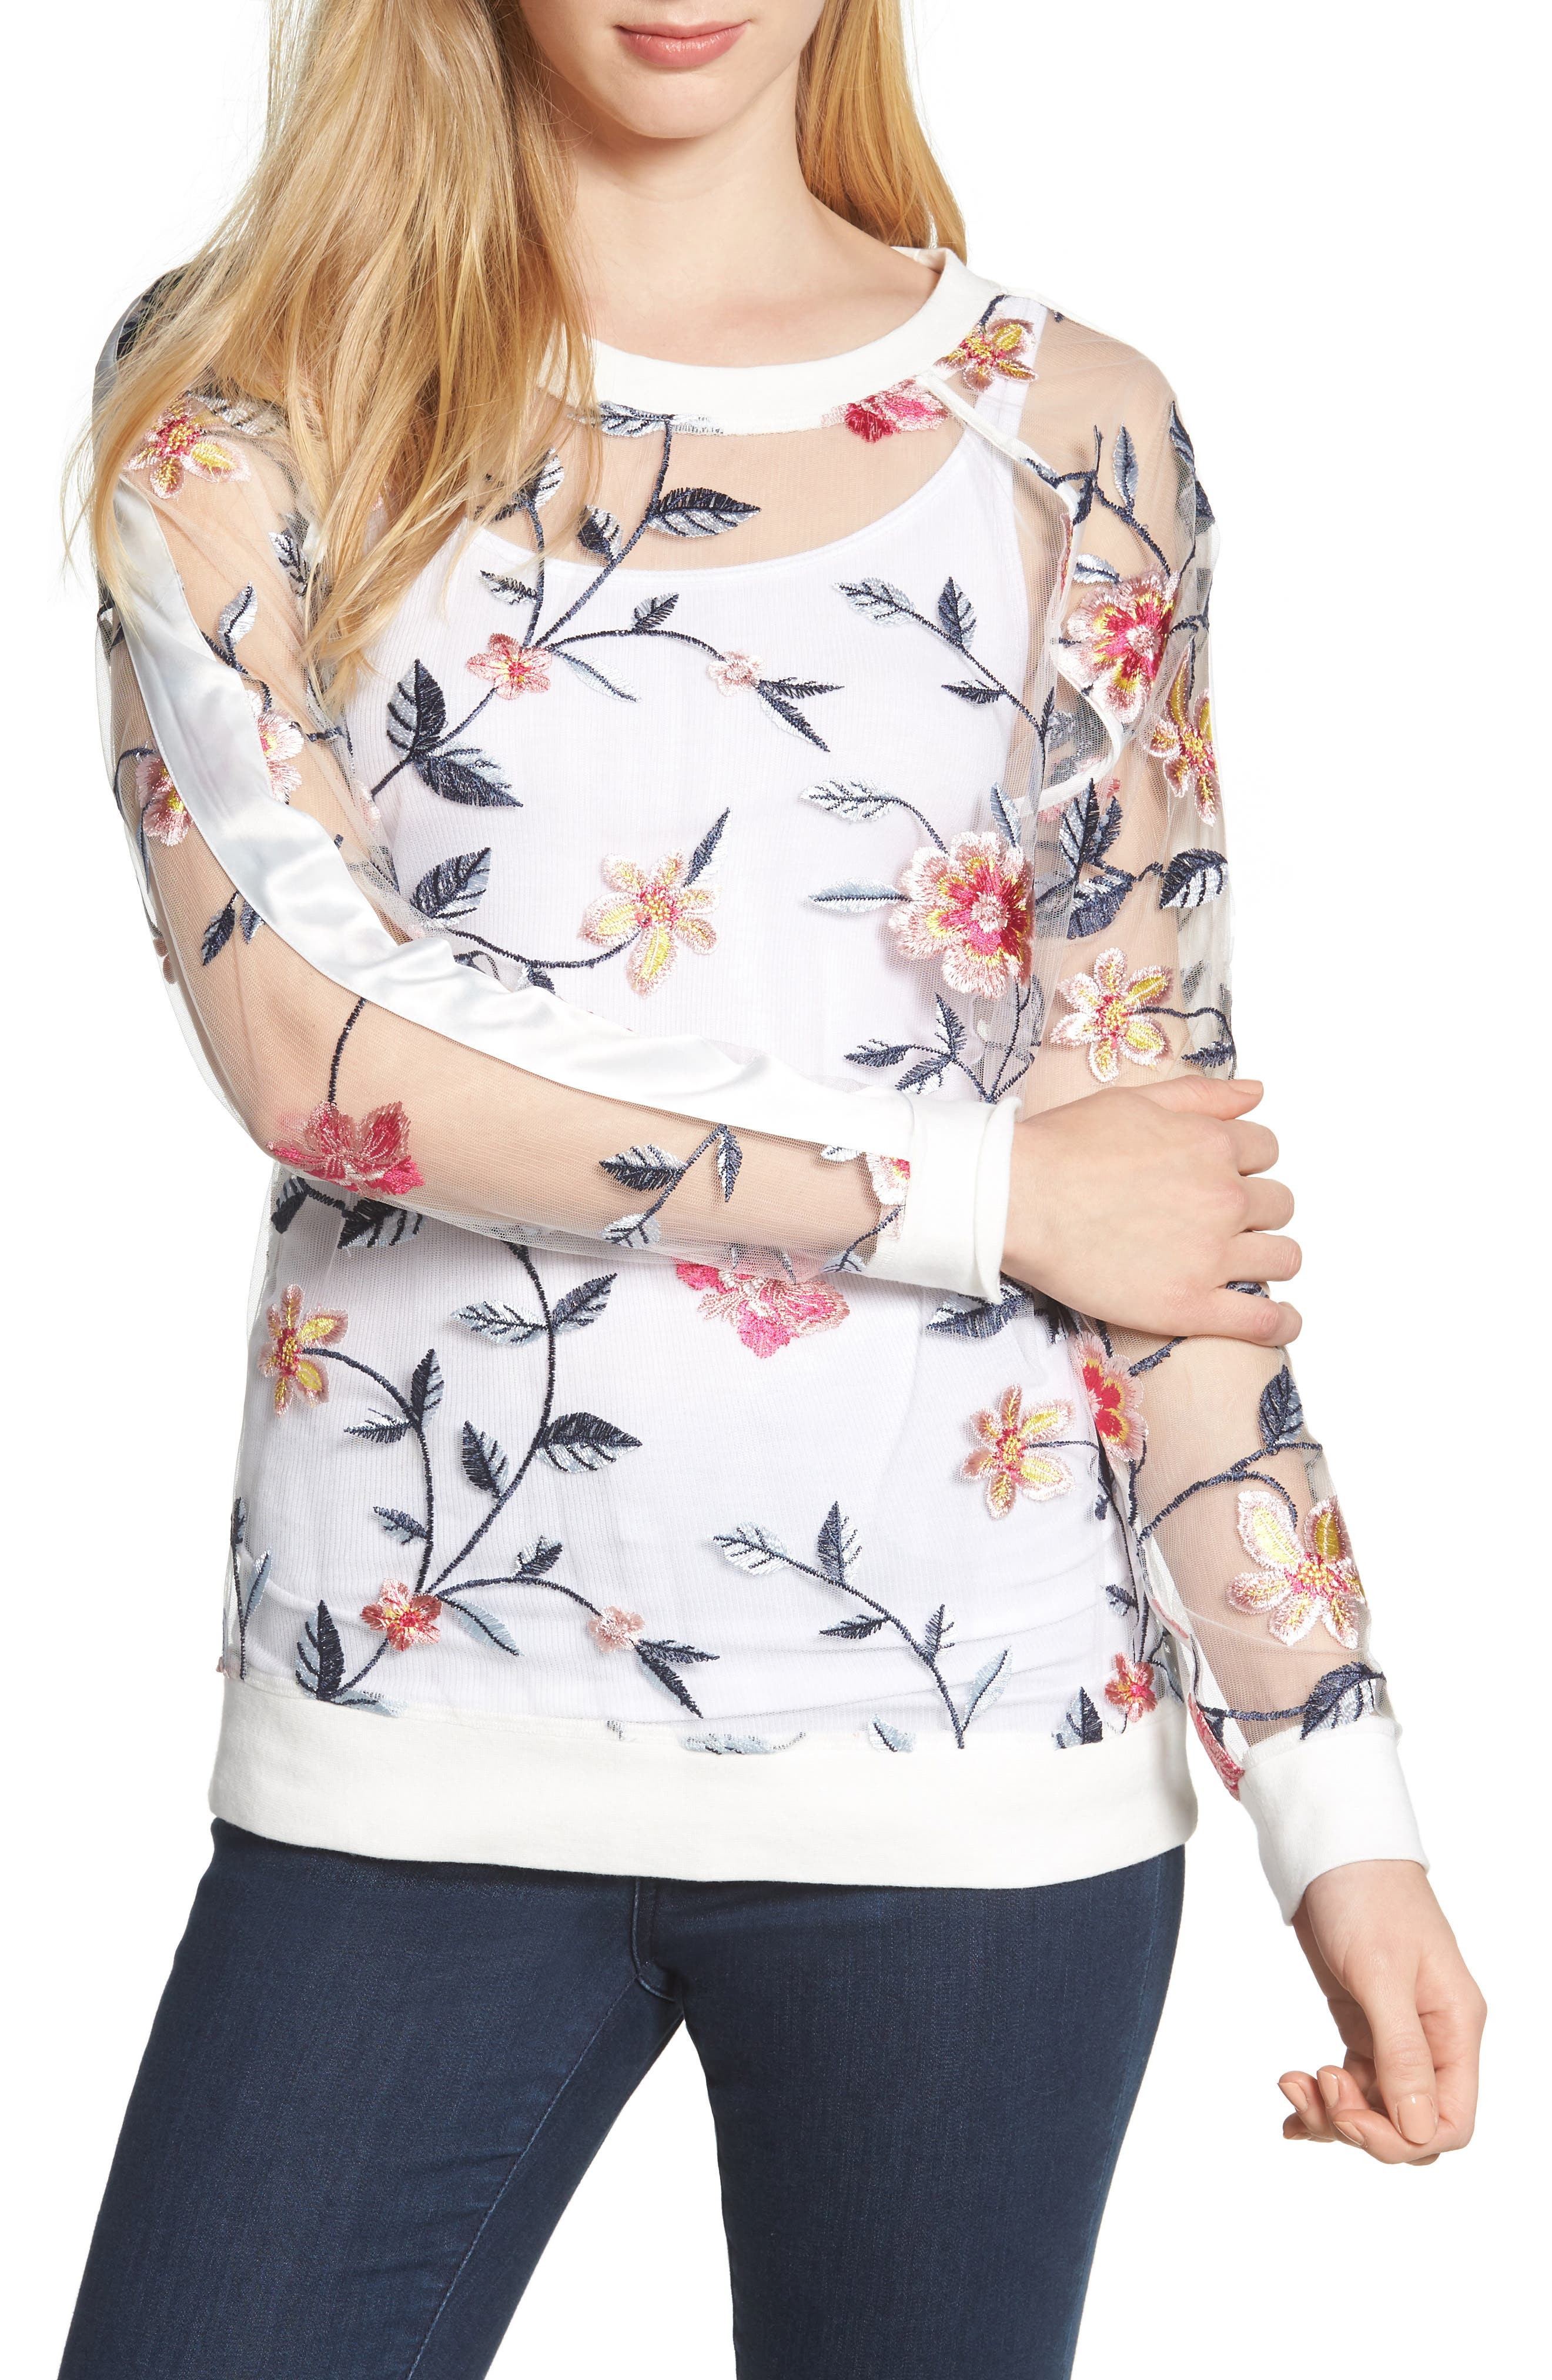 BILLY T Sheer Mesh Embroidered Sweatshirt, Main, color, 100